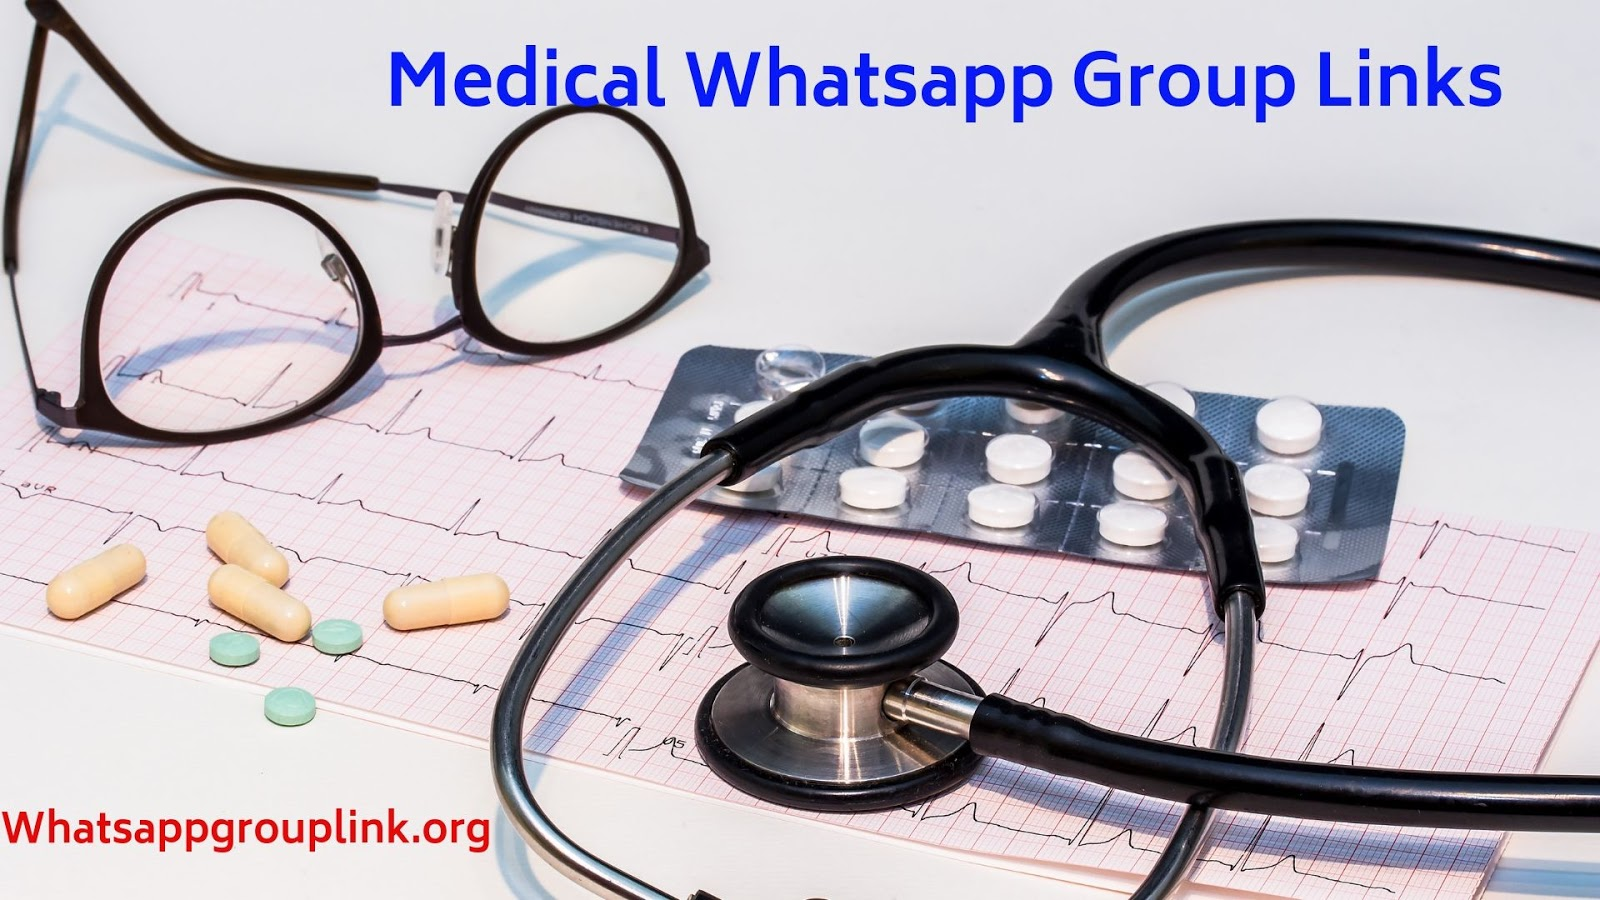 Whatsapp Group Link: Medical Whatsapp Group Links